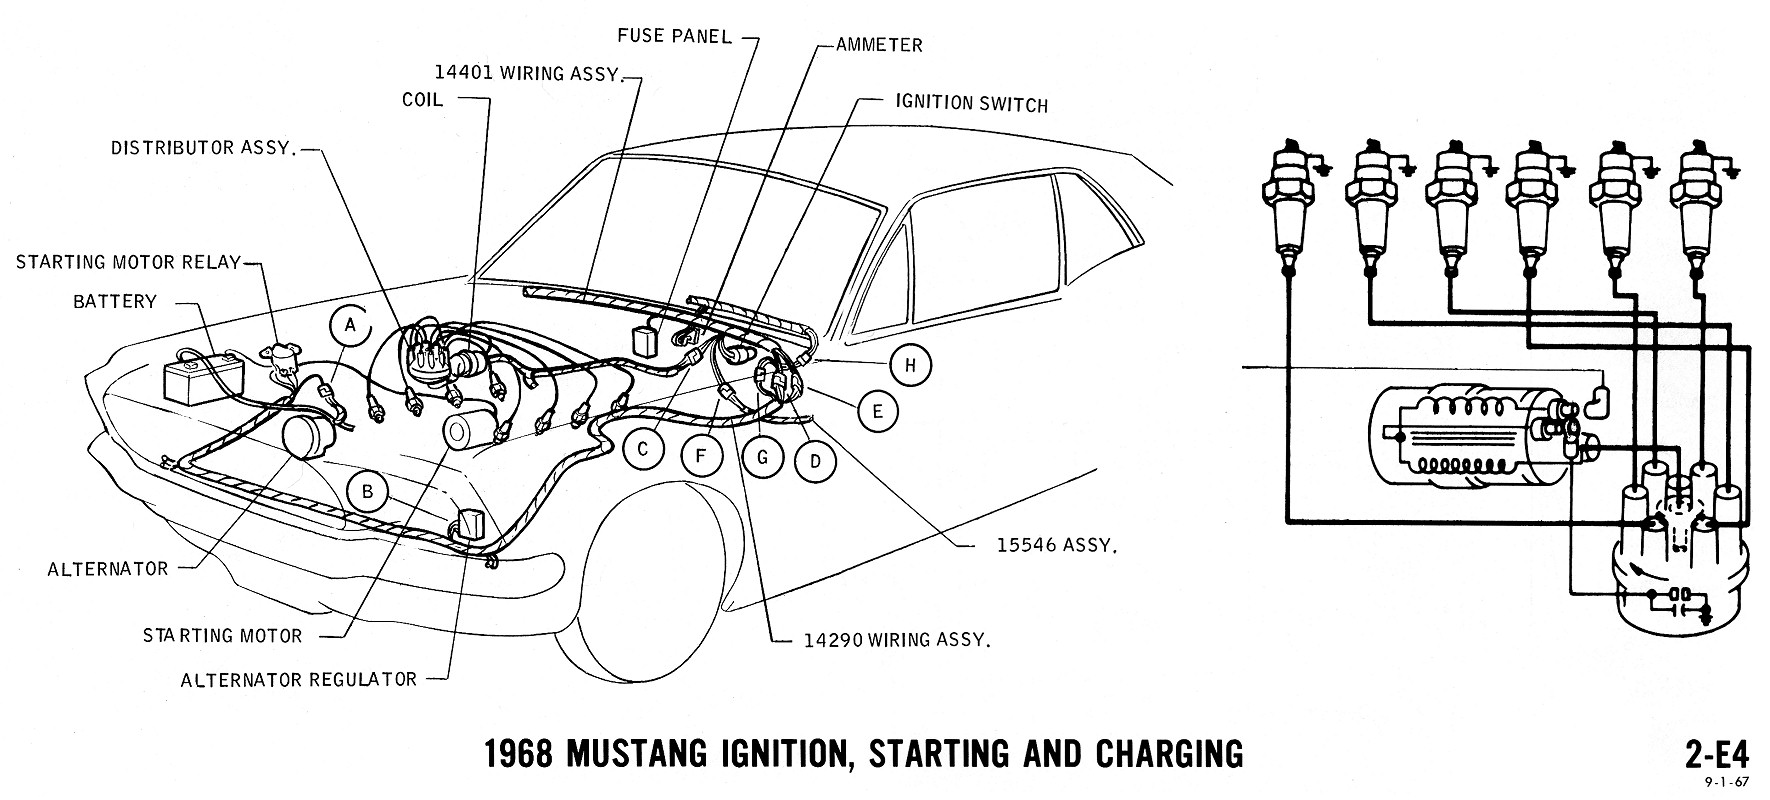 1968 mustang ignition wiring diagram schematics wiring diagrams u2022 rh seniorlivinguniversity co